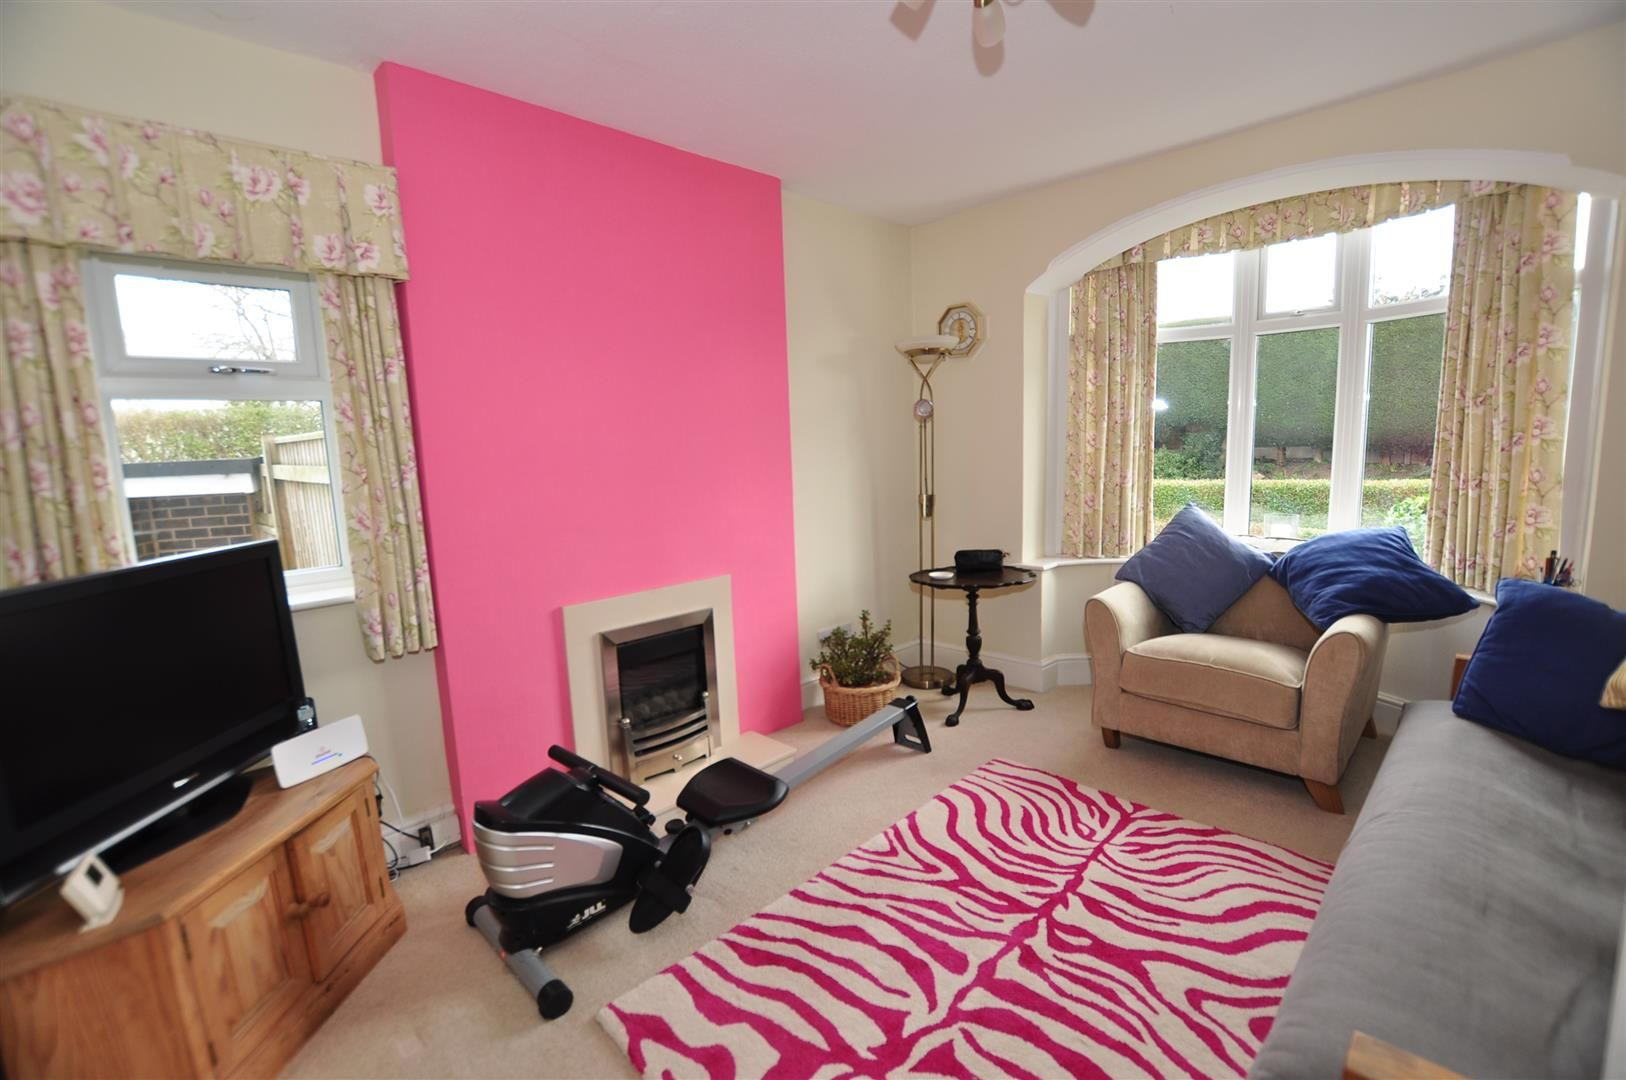 4 bed detached for sale in Hagley 5